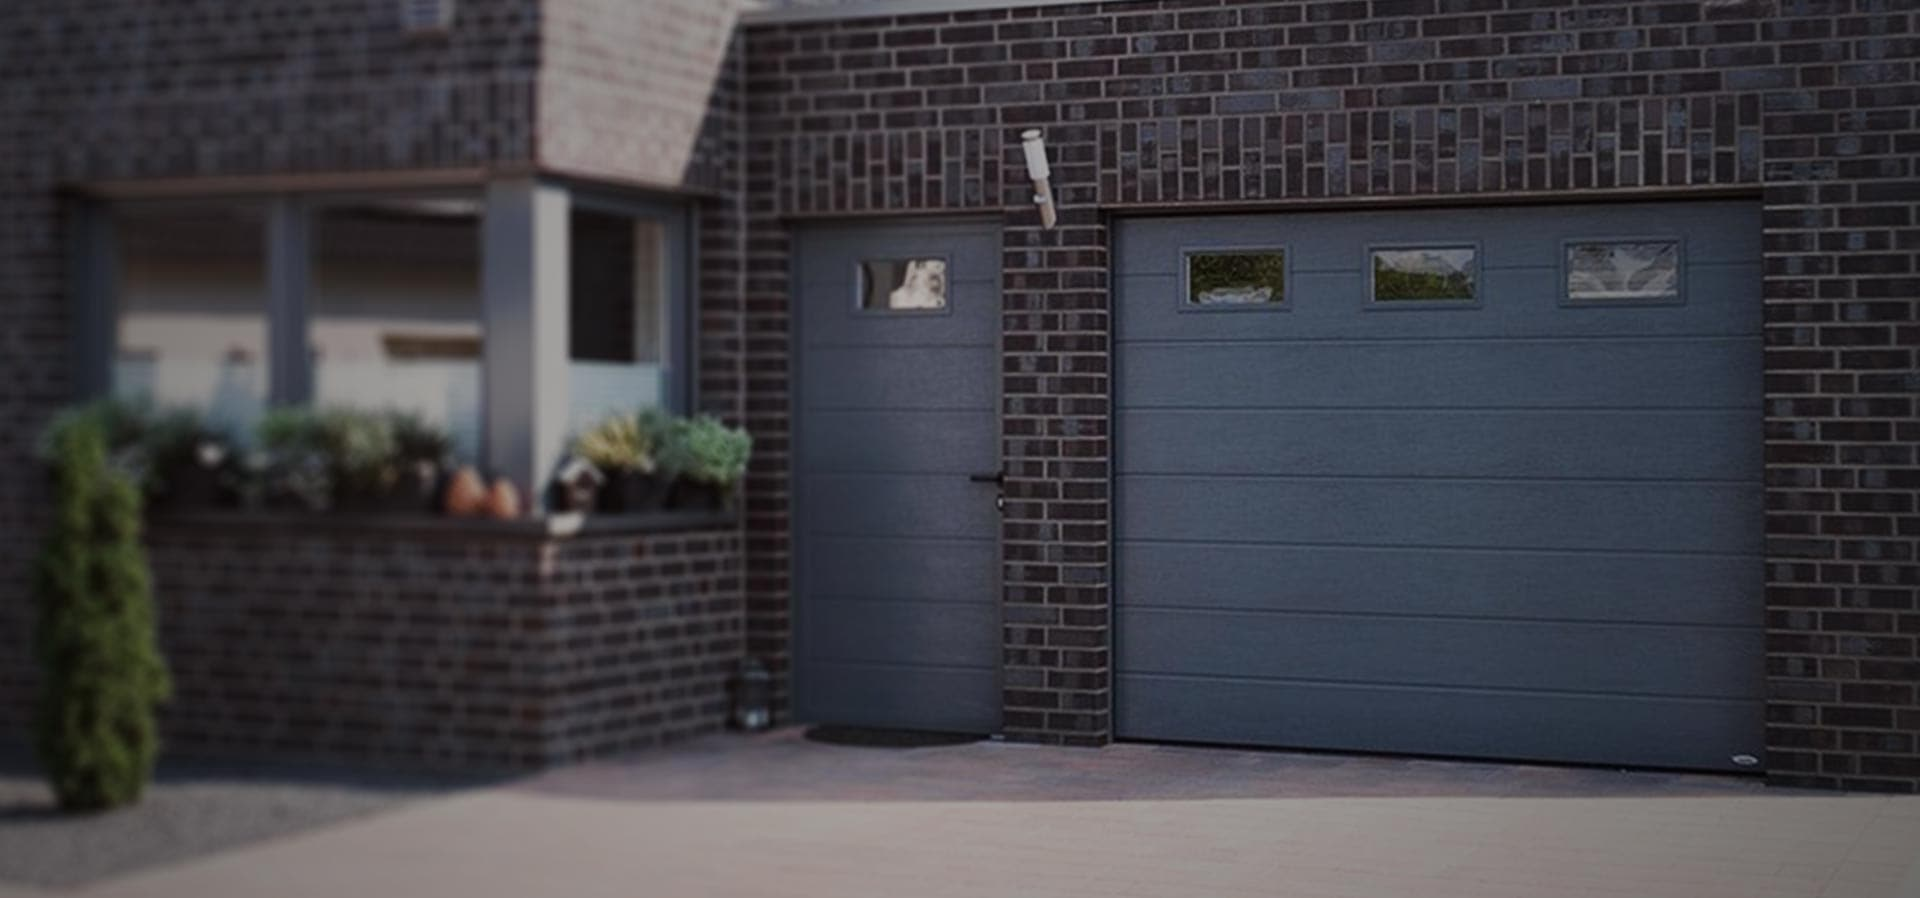 Sectional aluminium garage door in anthracite grey for custom new build home